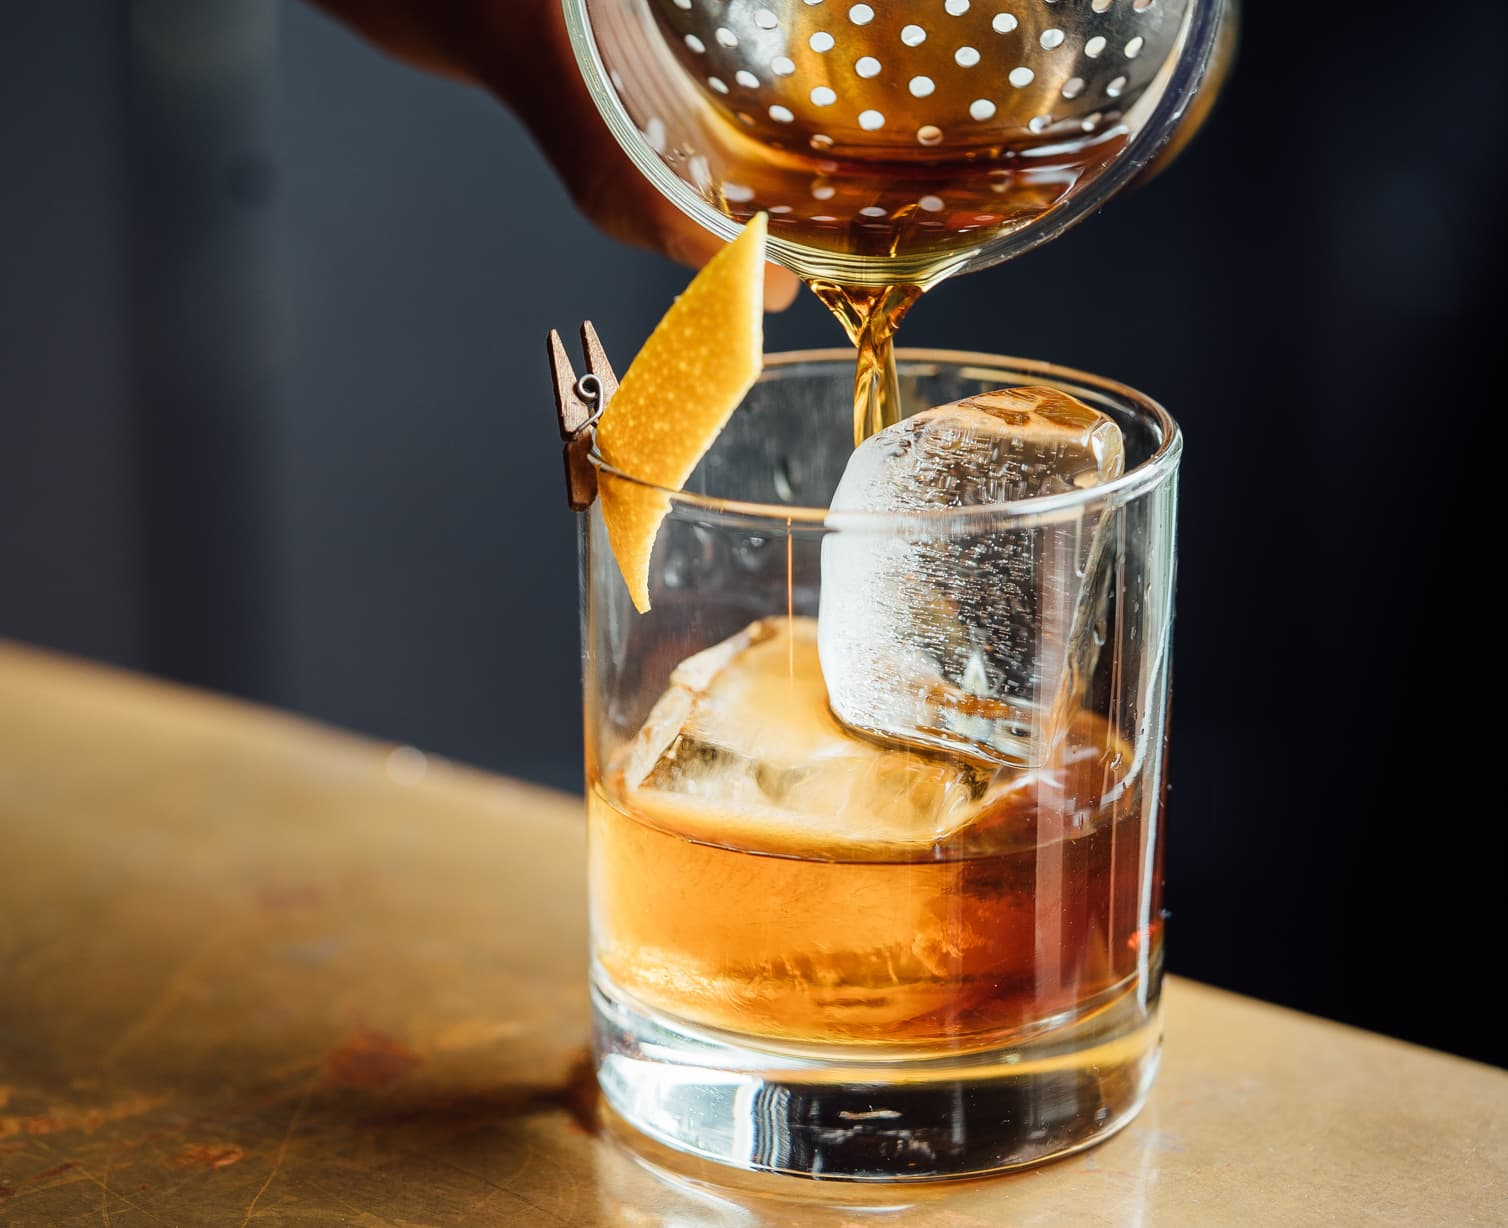 Whiskey pouring into a glass with two large ice cubes